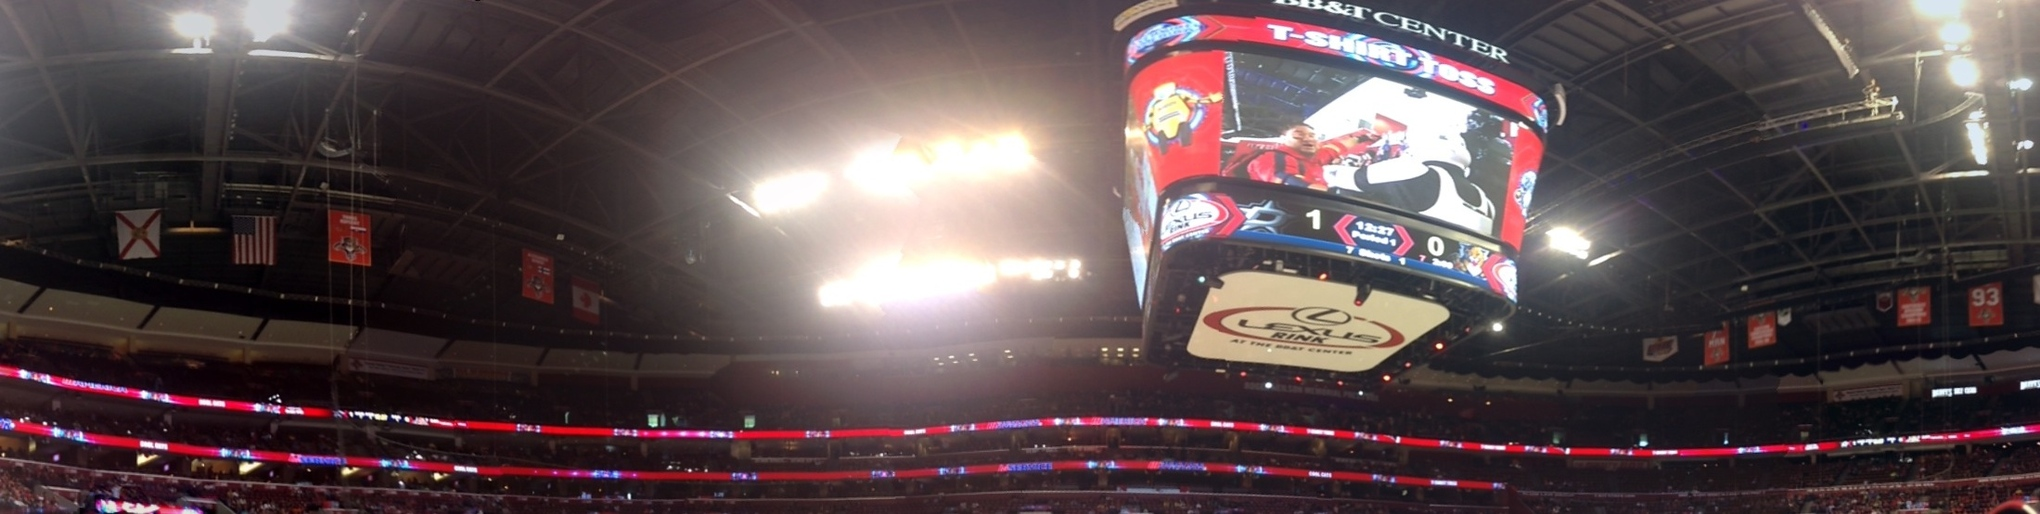 The Upper Deck Of The Bb Amp T Center A New Perspective